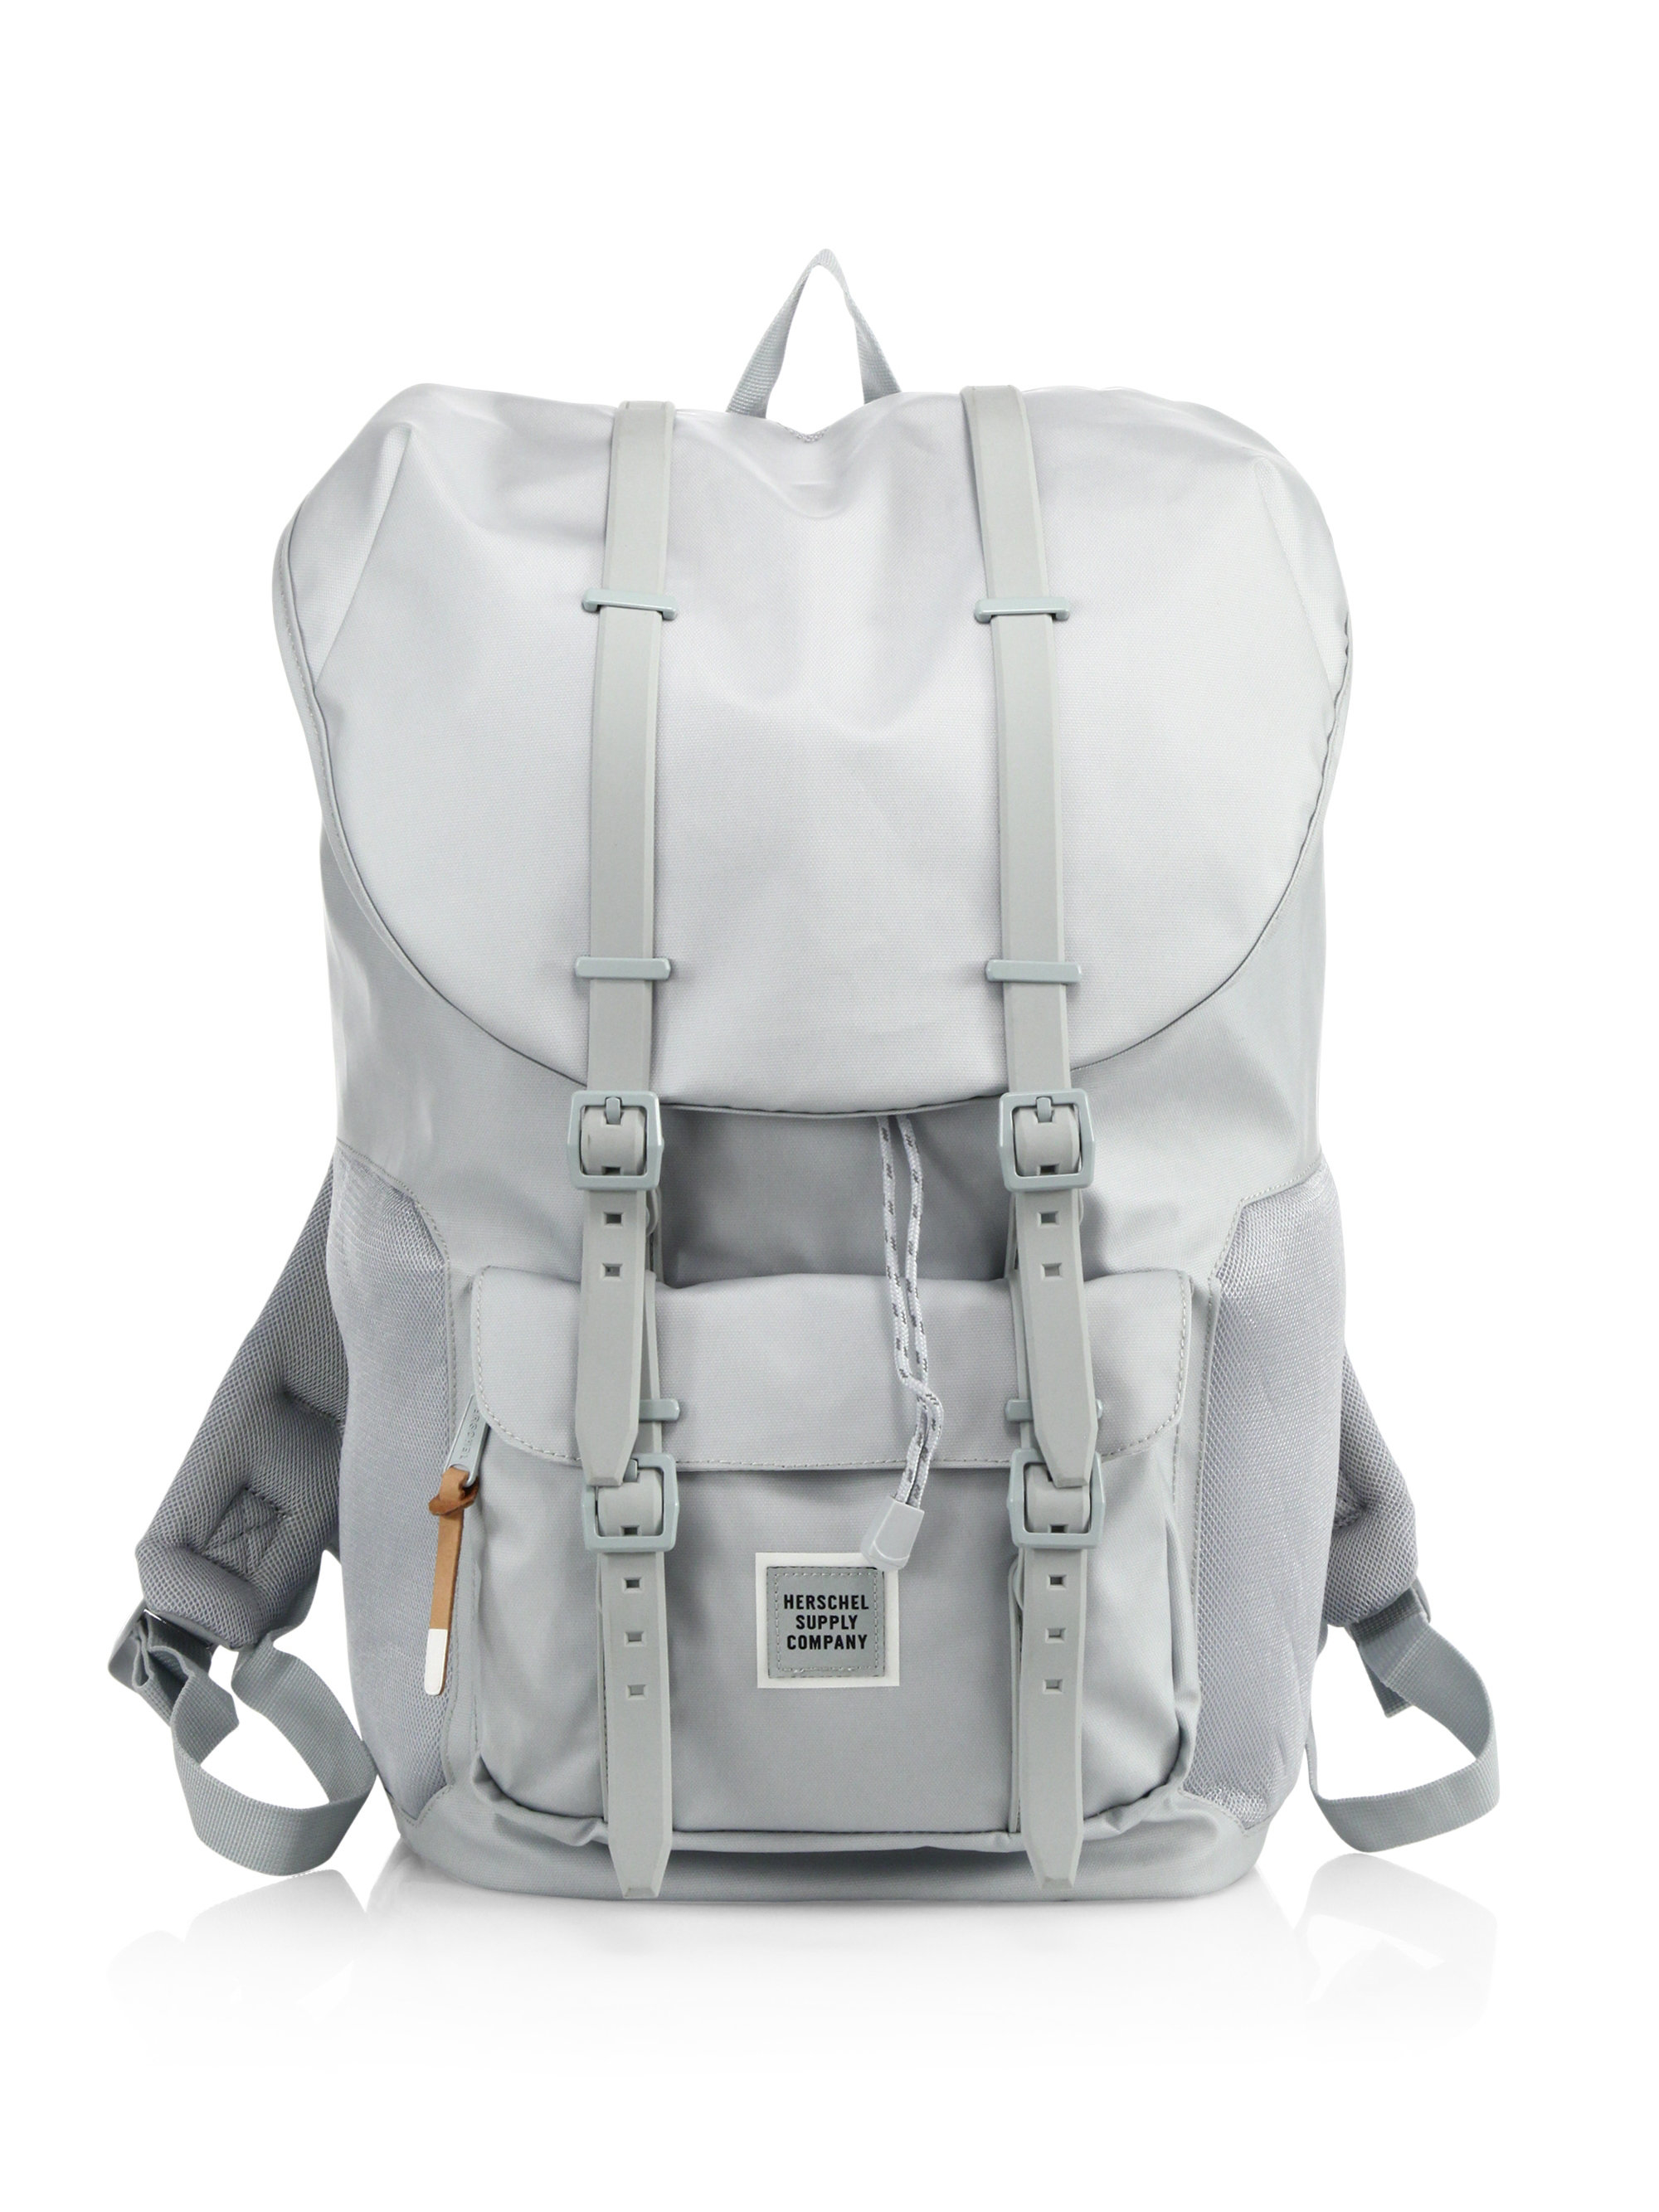 Lyst - Herschel Supply Co. Studio Polycoat Little America Backpack ... 79ee2cd8a3